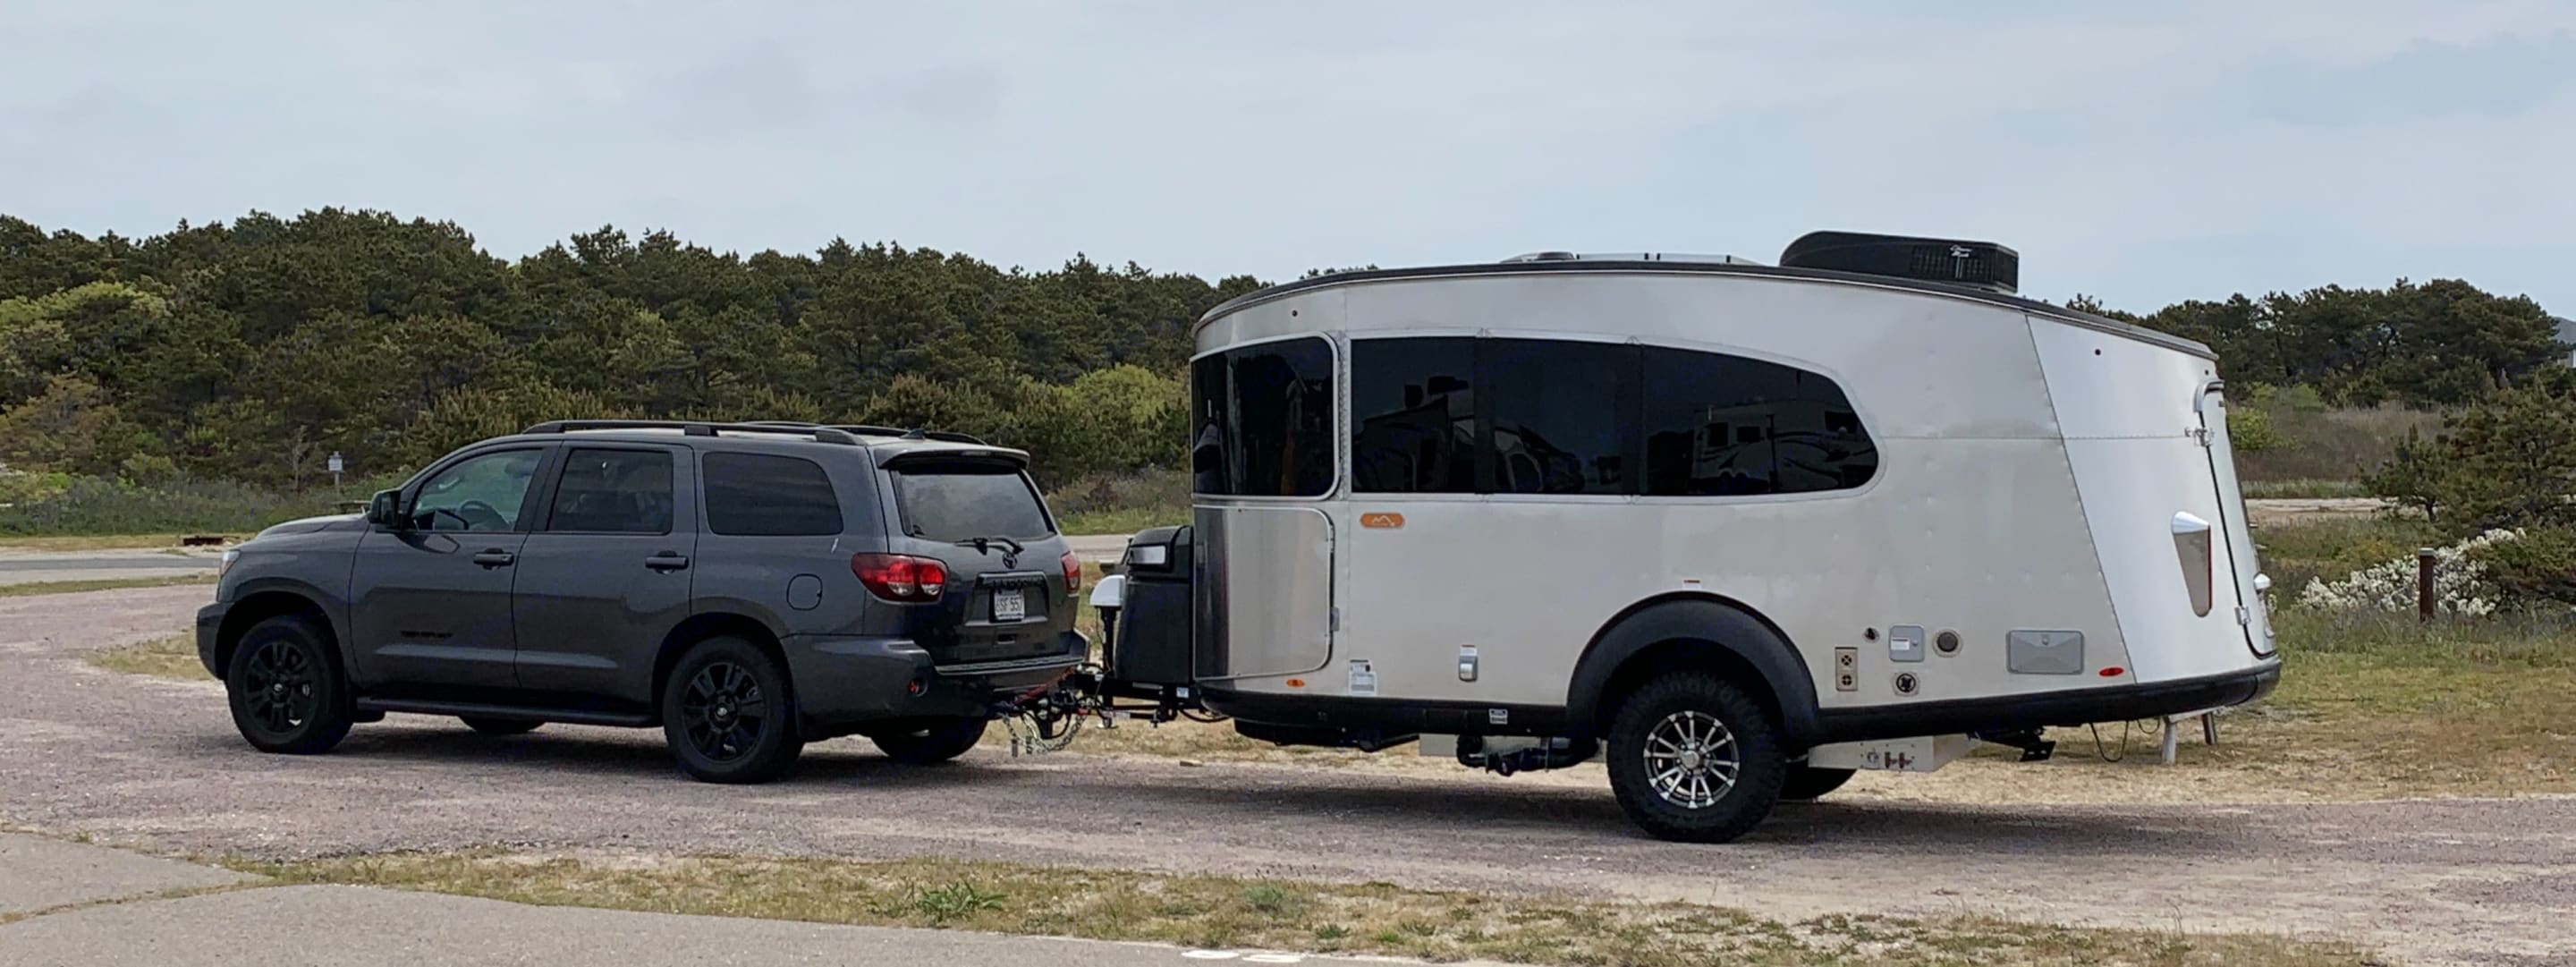 Eva is ready for your outing - rent our Toyota Sequoia if you need wheels (or leave the driving to us within 70 miles of boston)!. Airstream Base Camp 2021